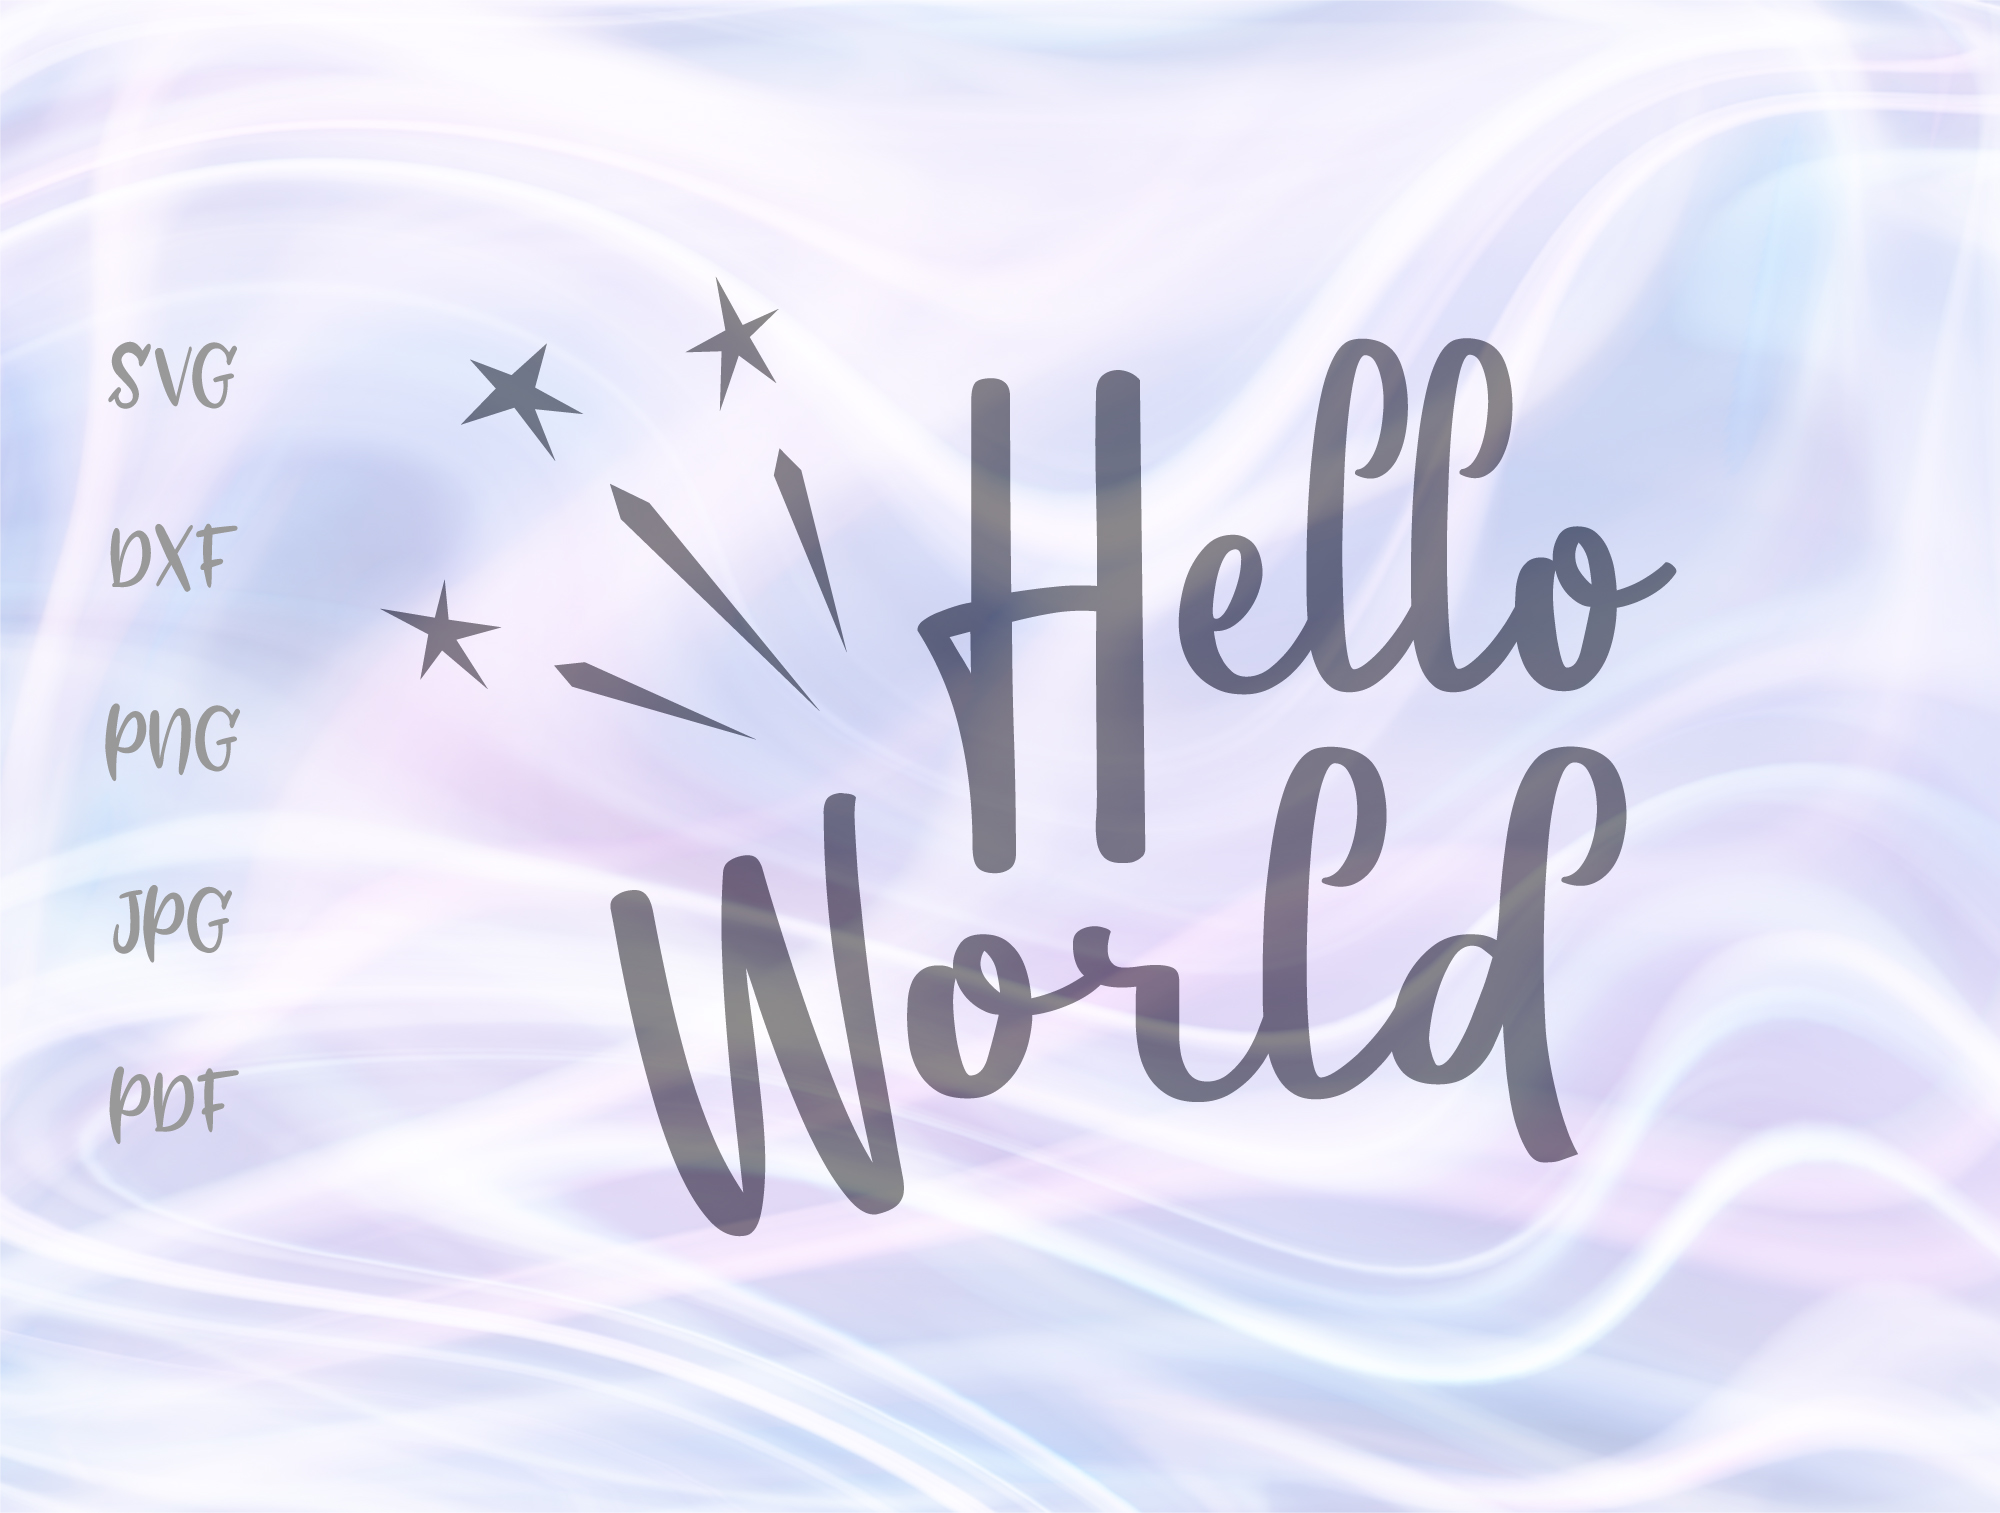 Download Free Hello World Graphic By Digitals By Hanna Creative Fabrica for Cricut Explore, Silhouette and other cutting machines.